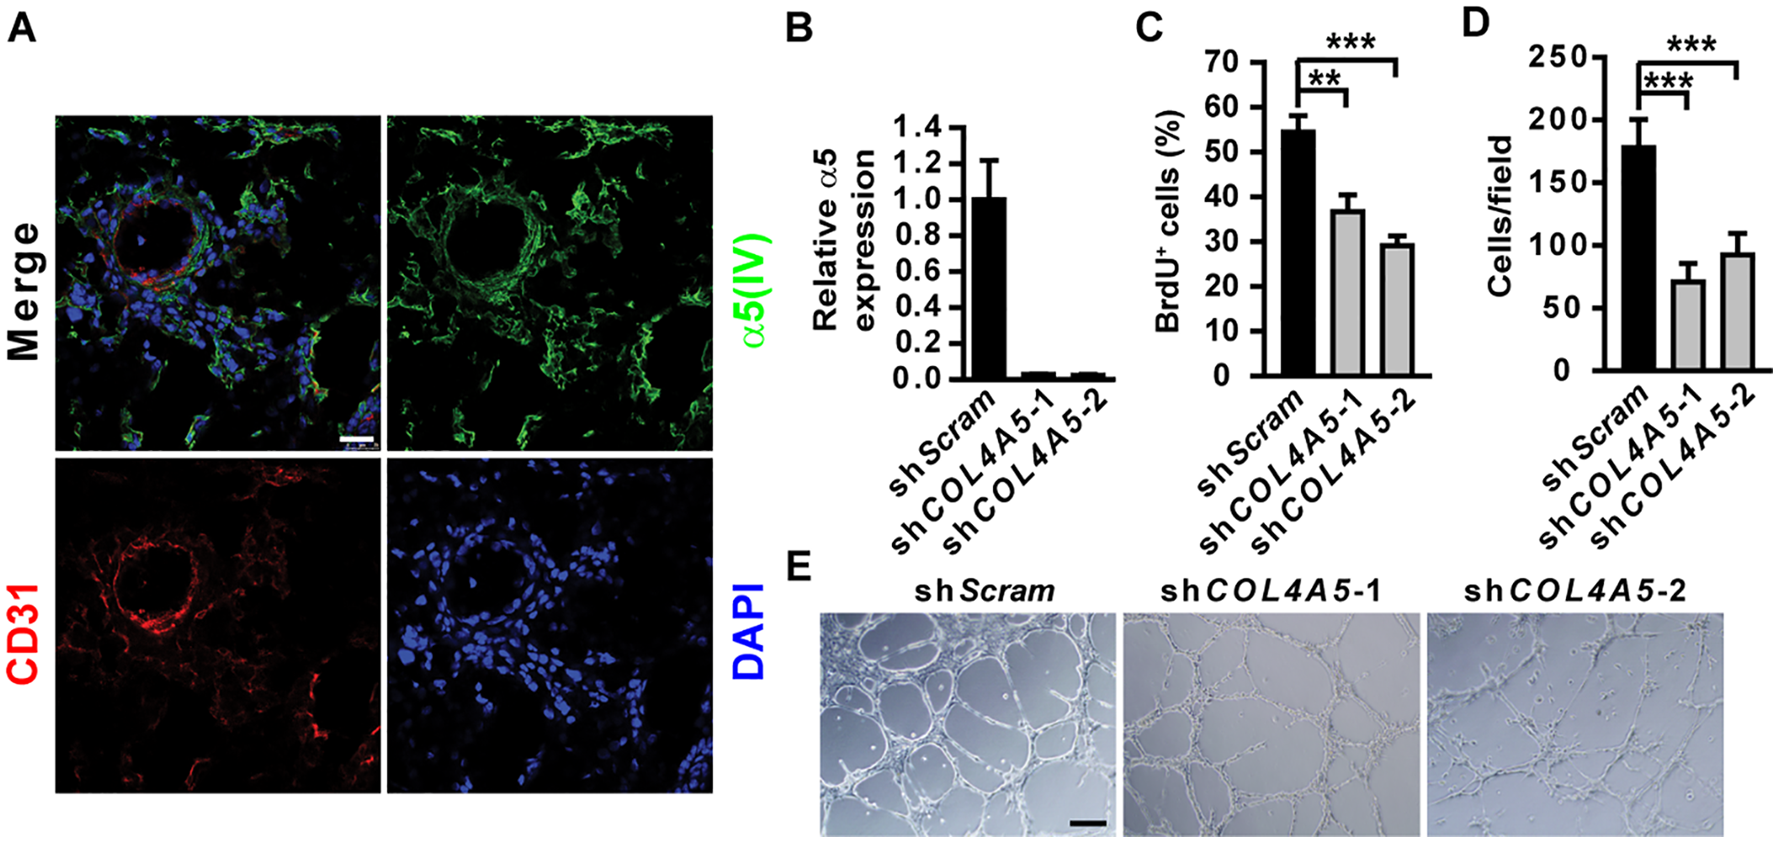 α5(IV) is expressed in endothelial cells and required for endothelial cell proliferation and tubulogenesis.